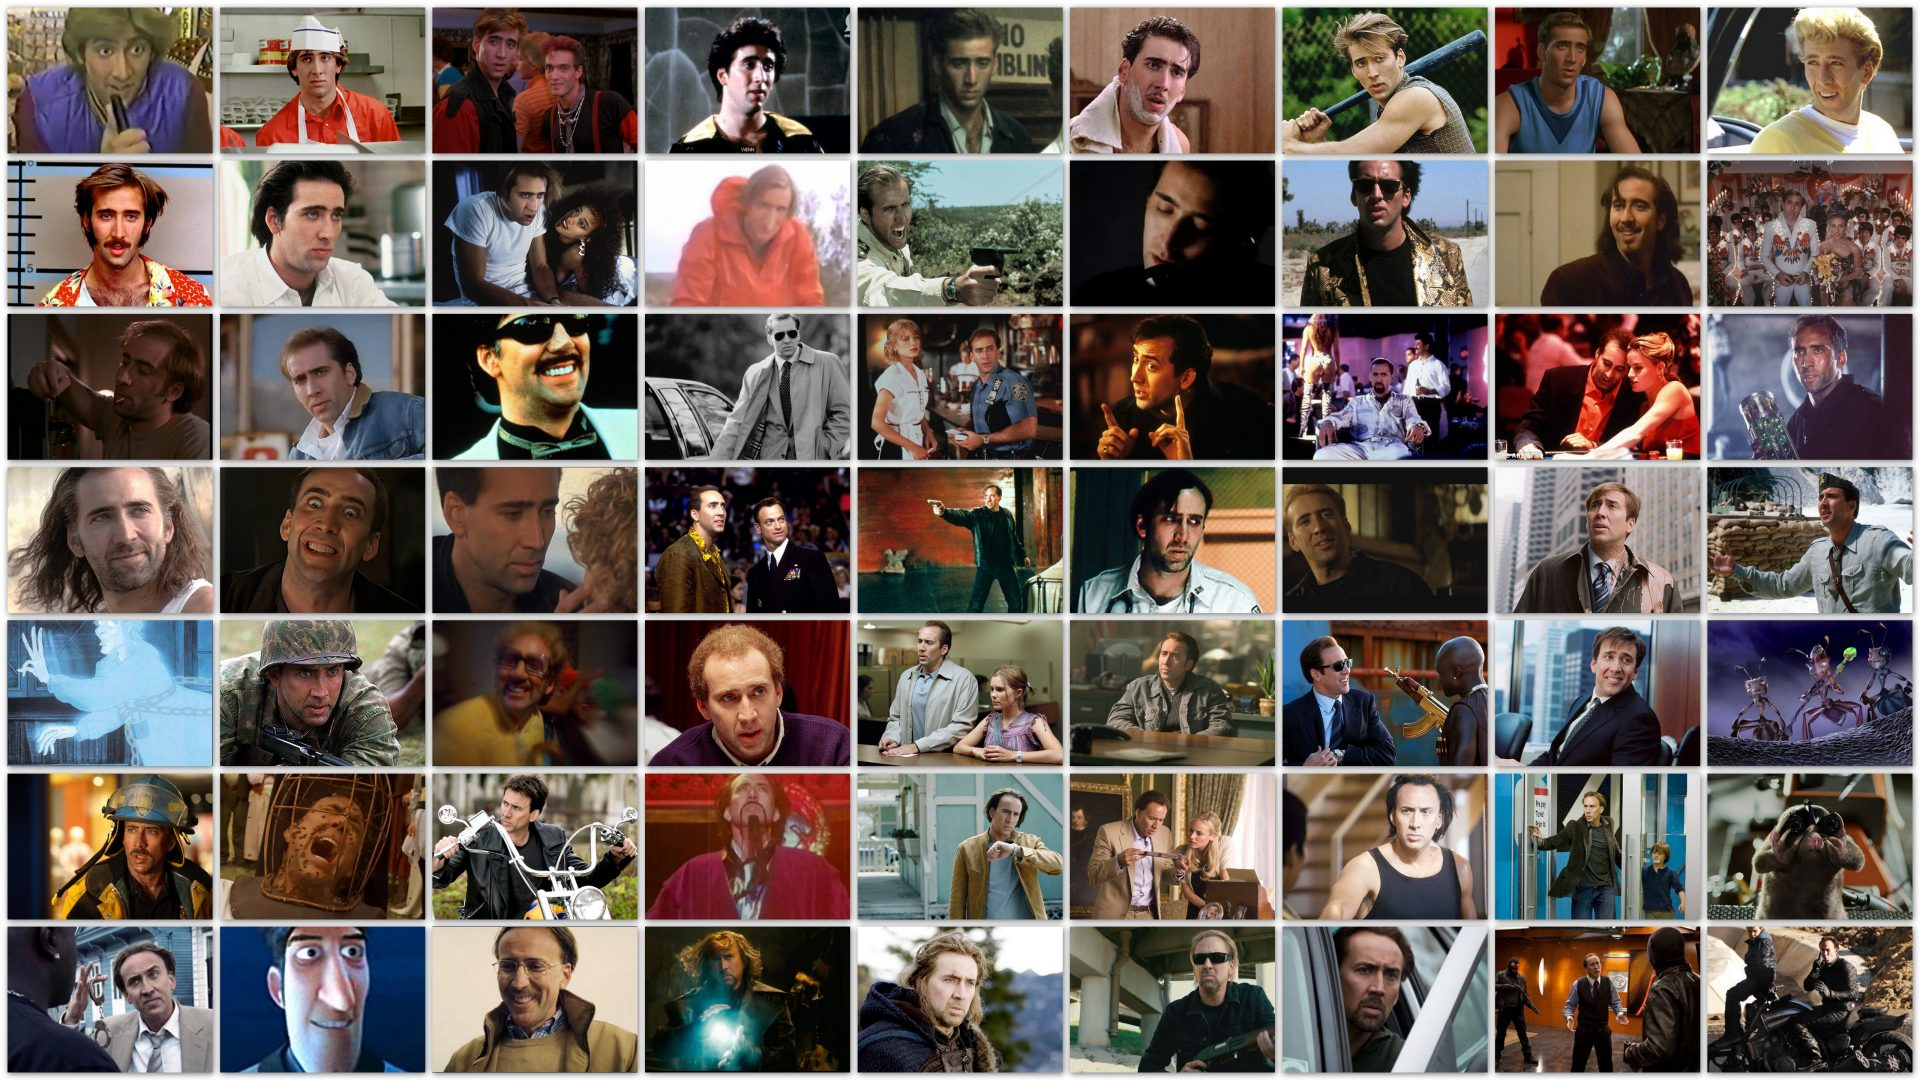 A Nicolas Cage collage.